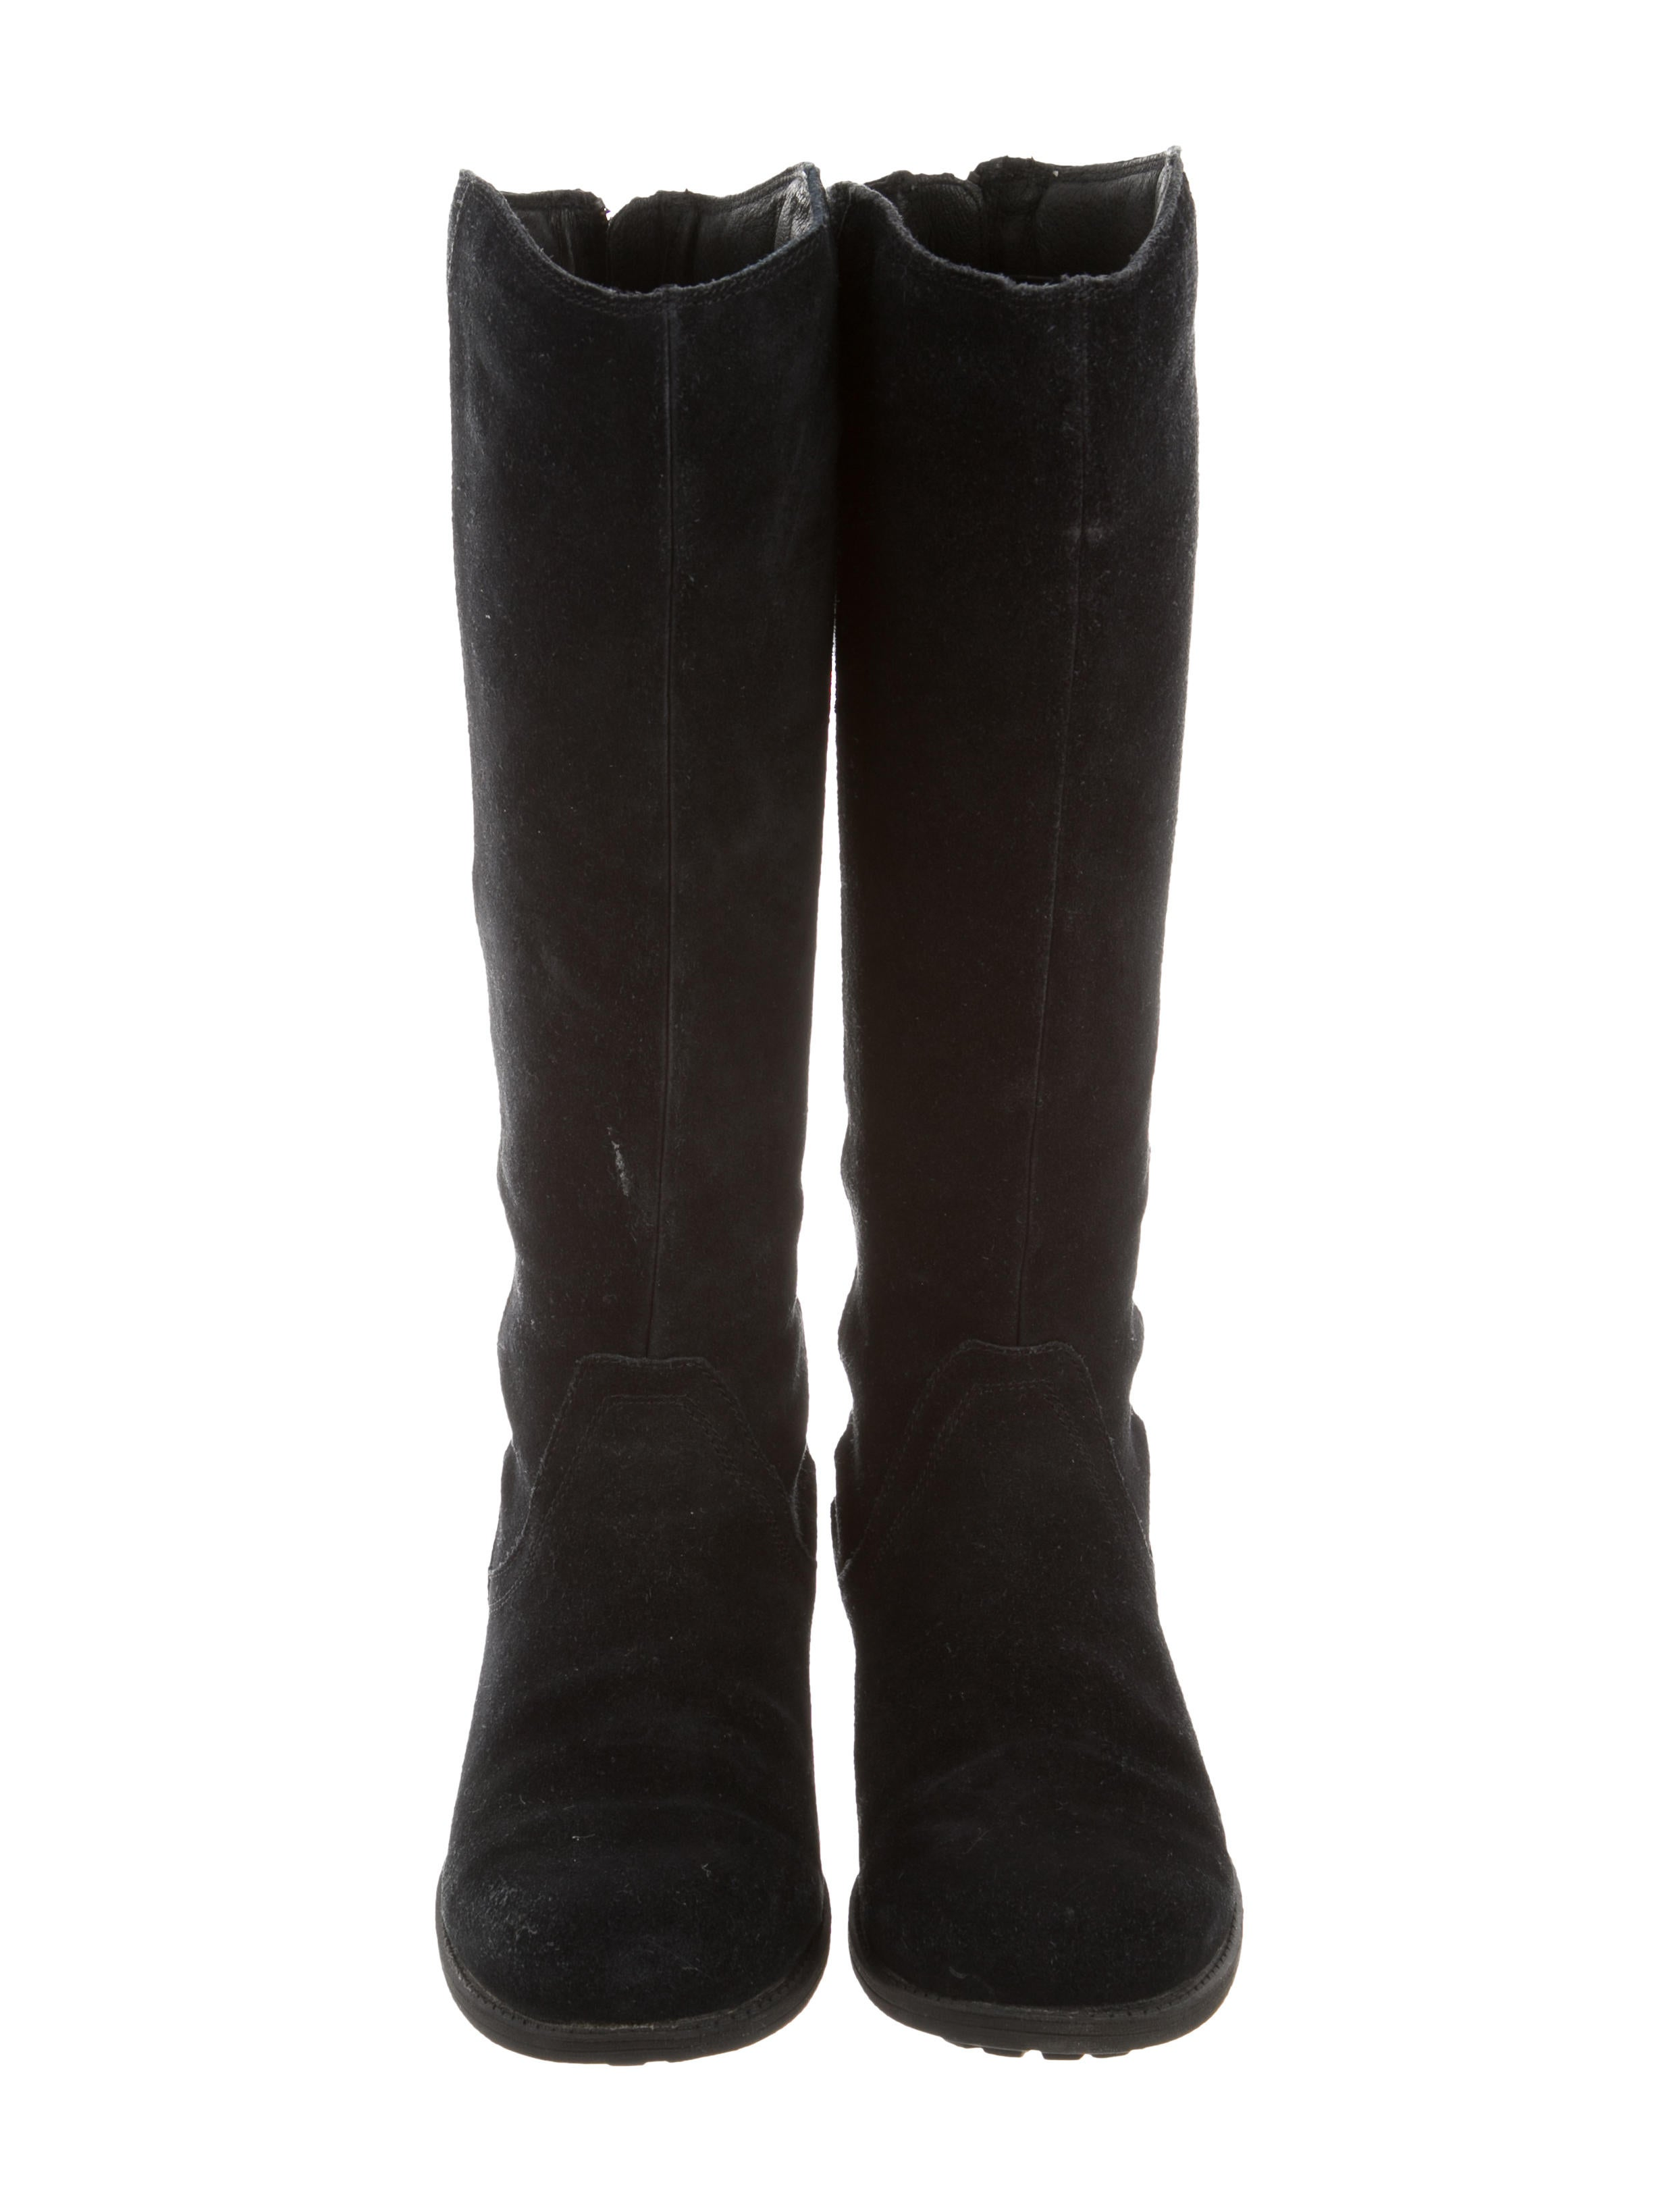 ugg australia seldon riding boot